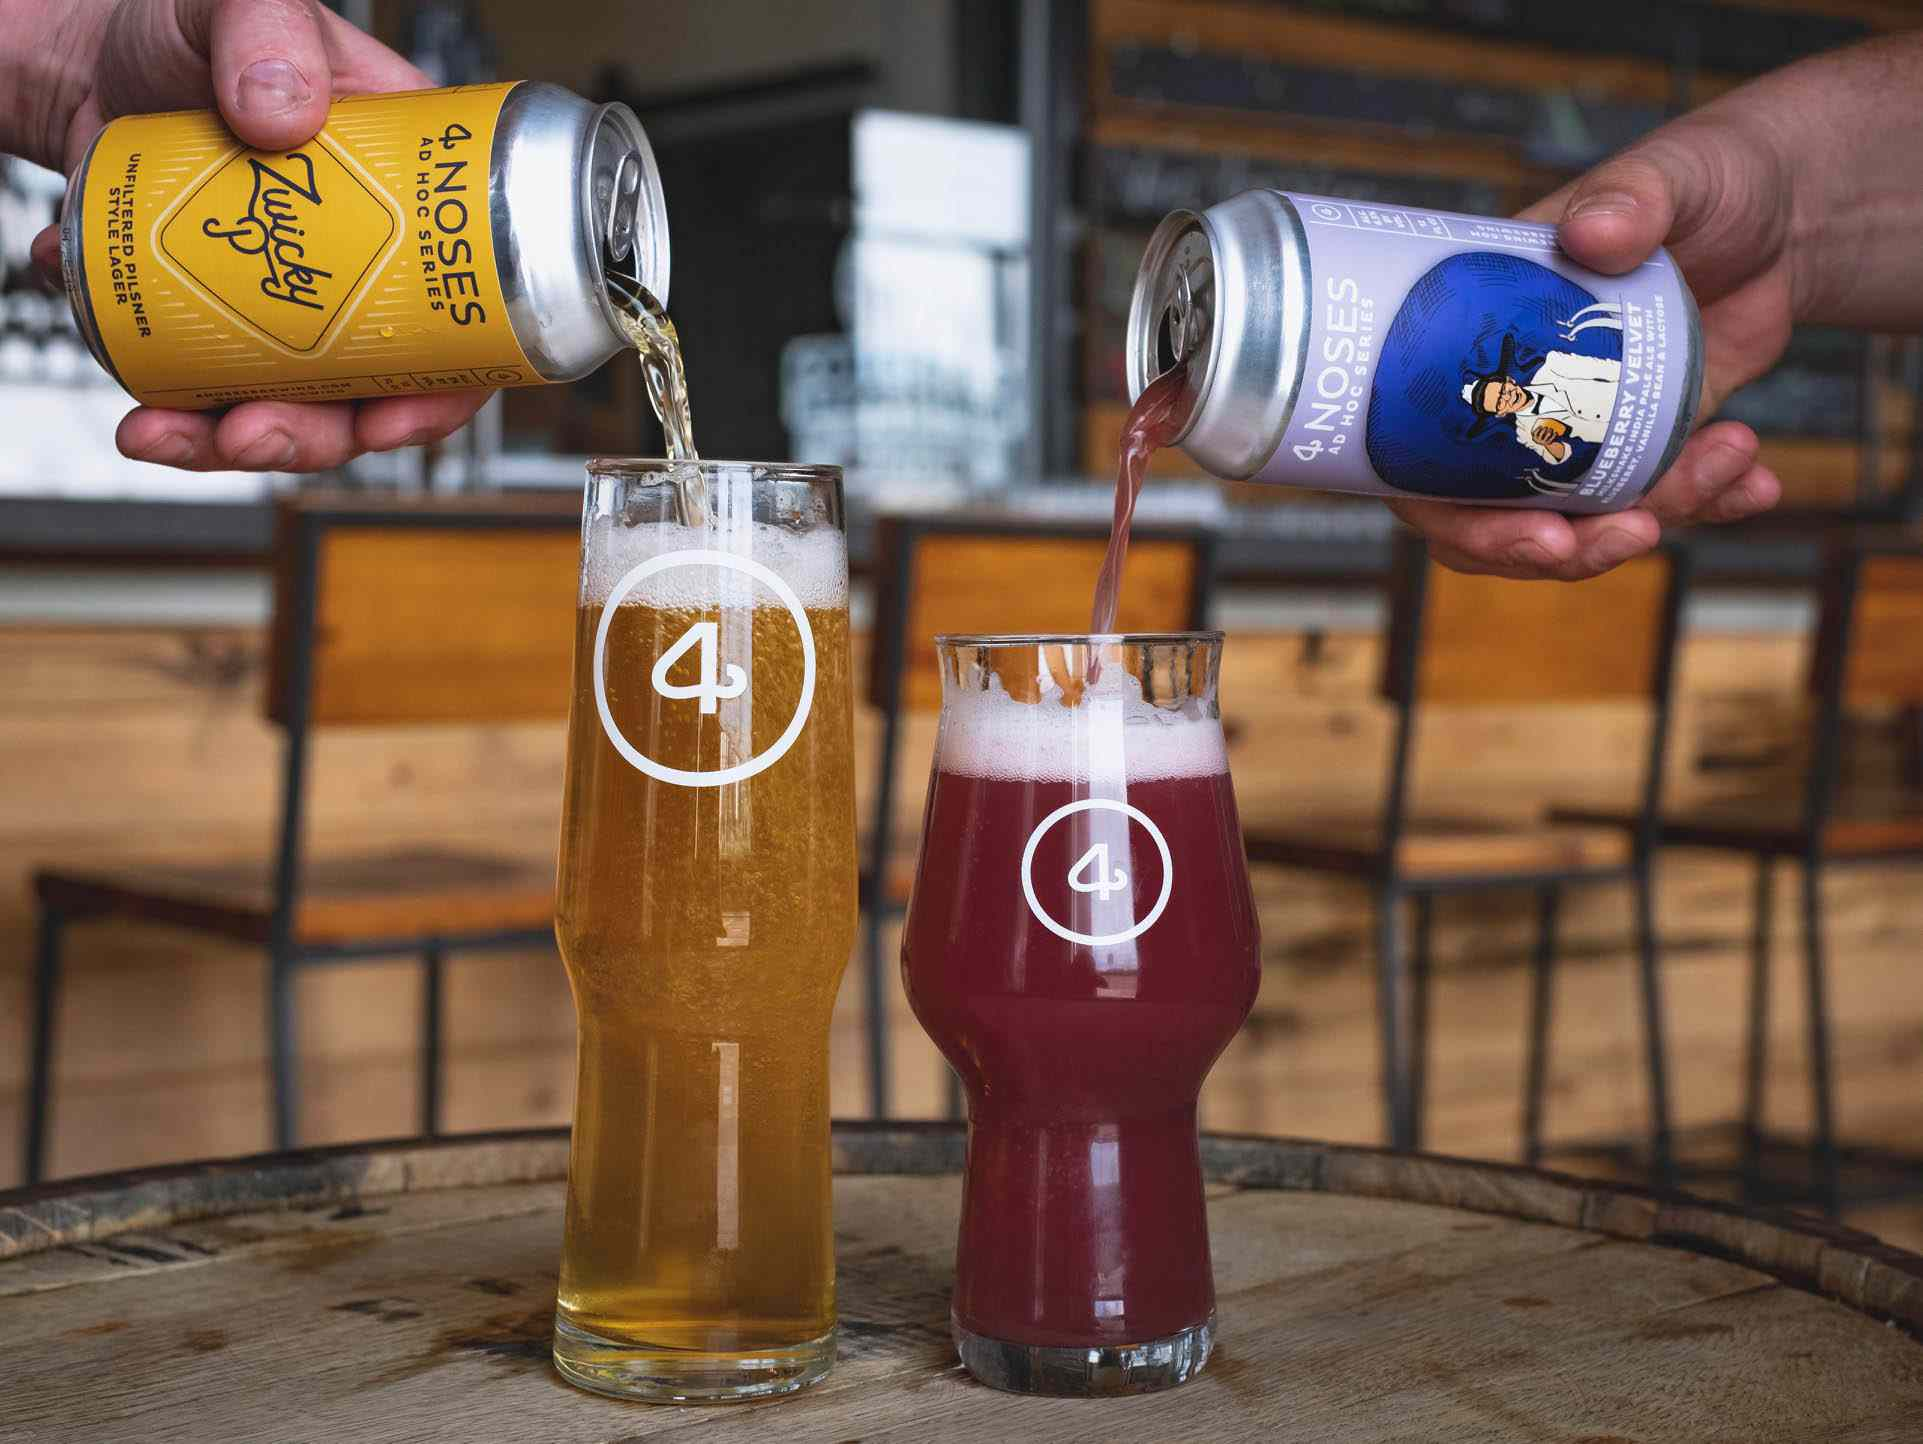 Two people pouring different beer from 2 different 4noses cans into 4noses branded pint glasses